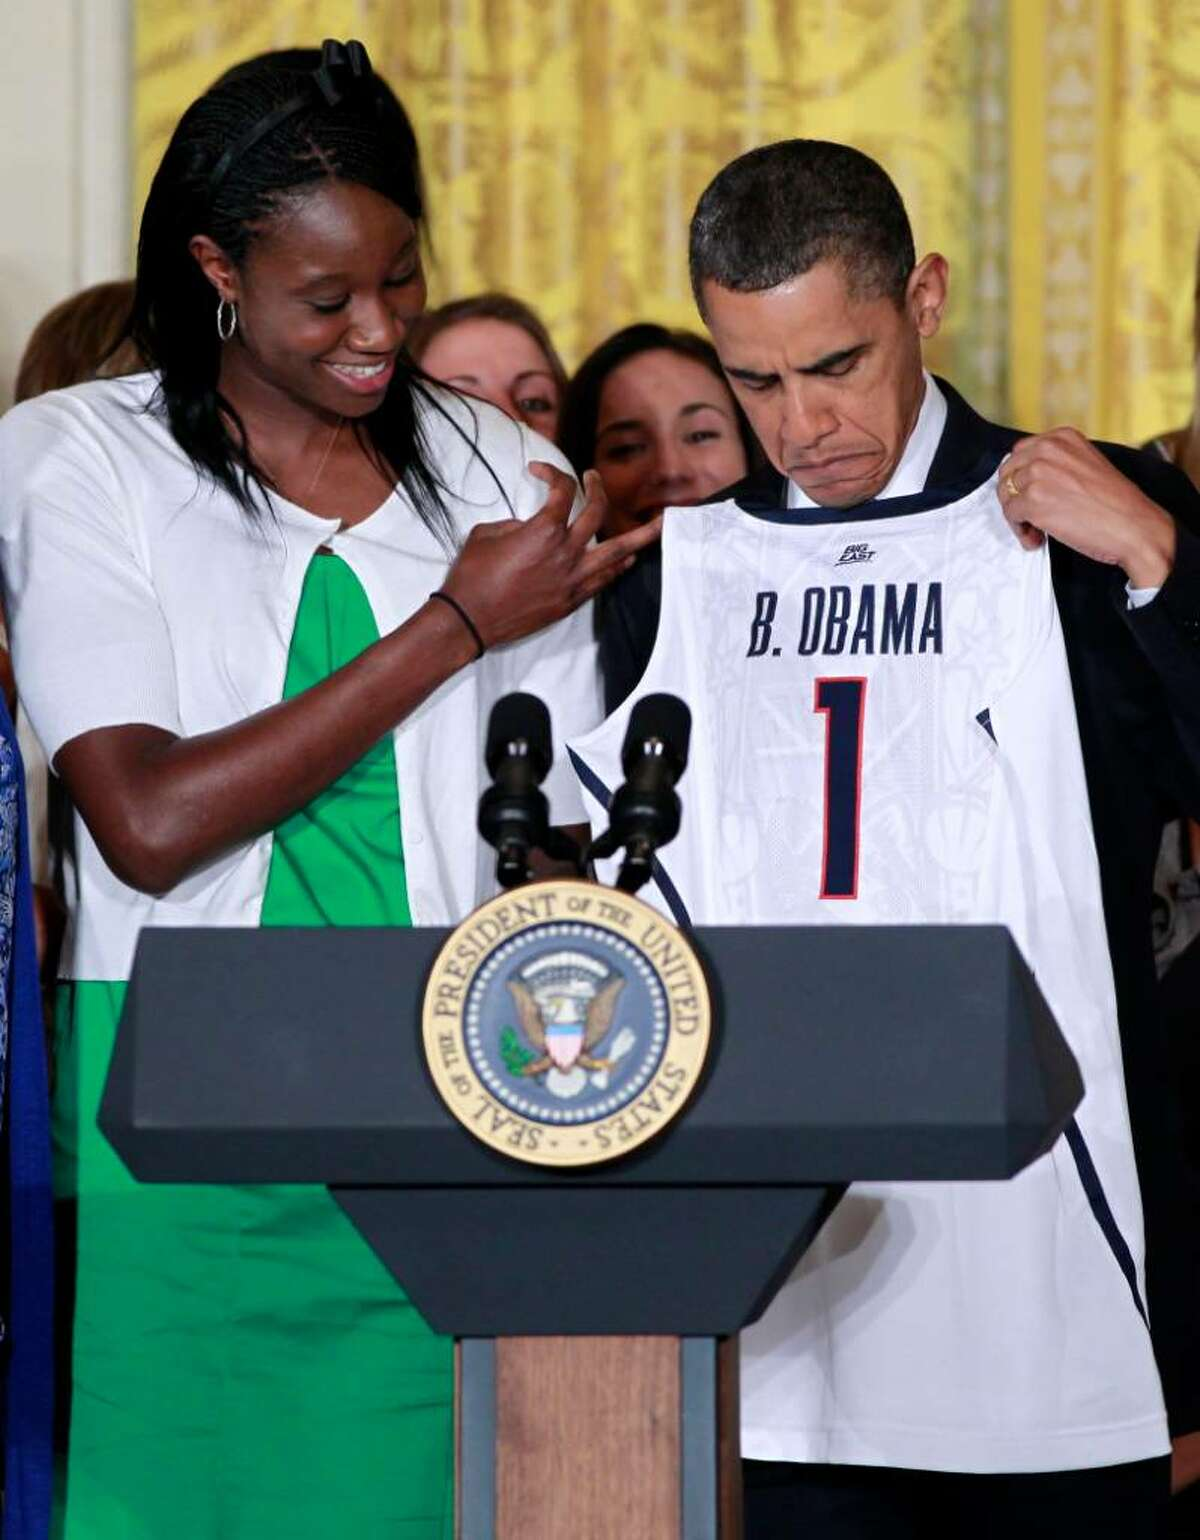 President Barack Obama is presented with a personalized team jersey by Tina Charles as he honored the 2010 NCAA champion University of Connecticut women's basketball team in the East Room of the White House in Washington, Monday, May 17, 2010. (AP Photo/Charles Dharapak)